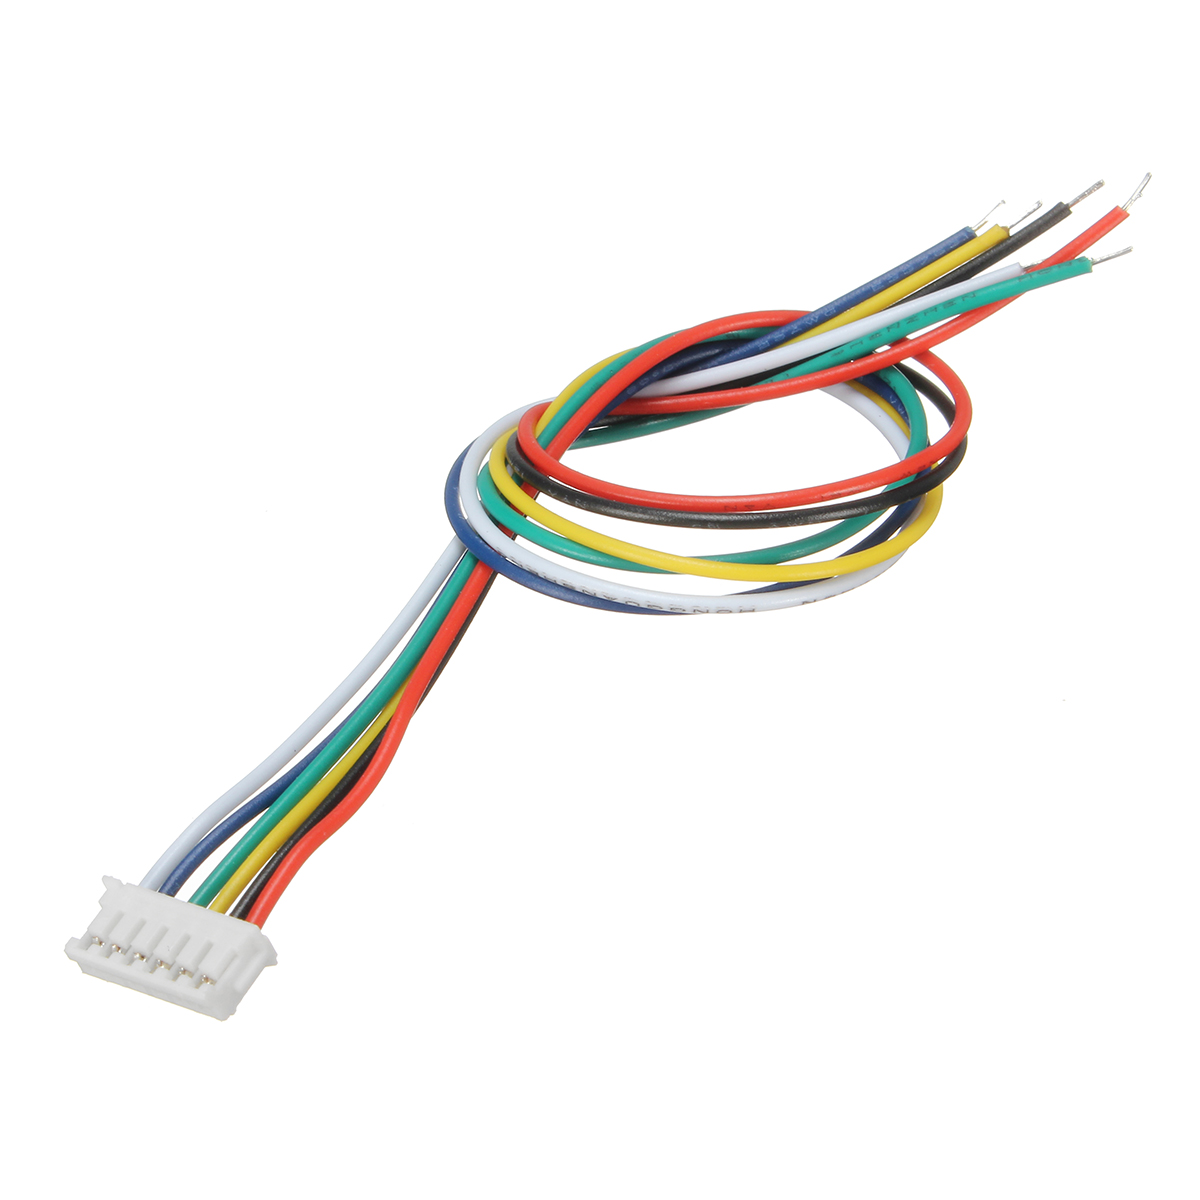 Excellway® Mini Micro JST 1.5mm ZH 6-Pin Connector Plug and Wires Cables 15cm 10 Set